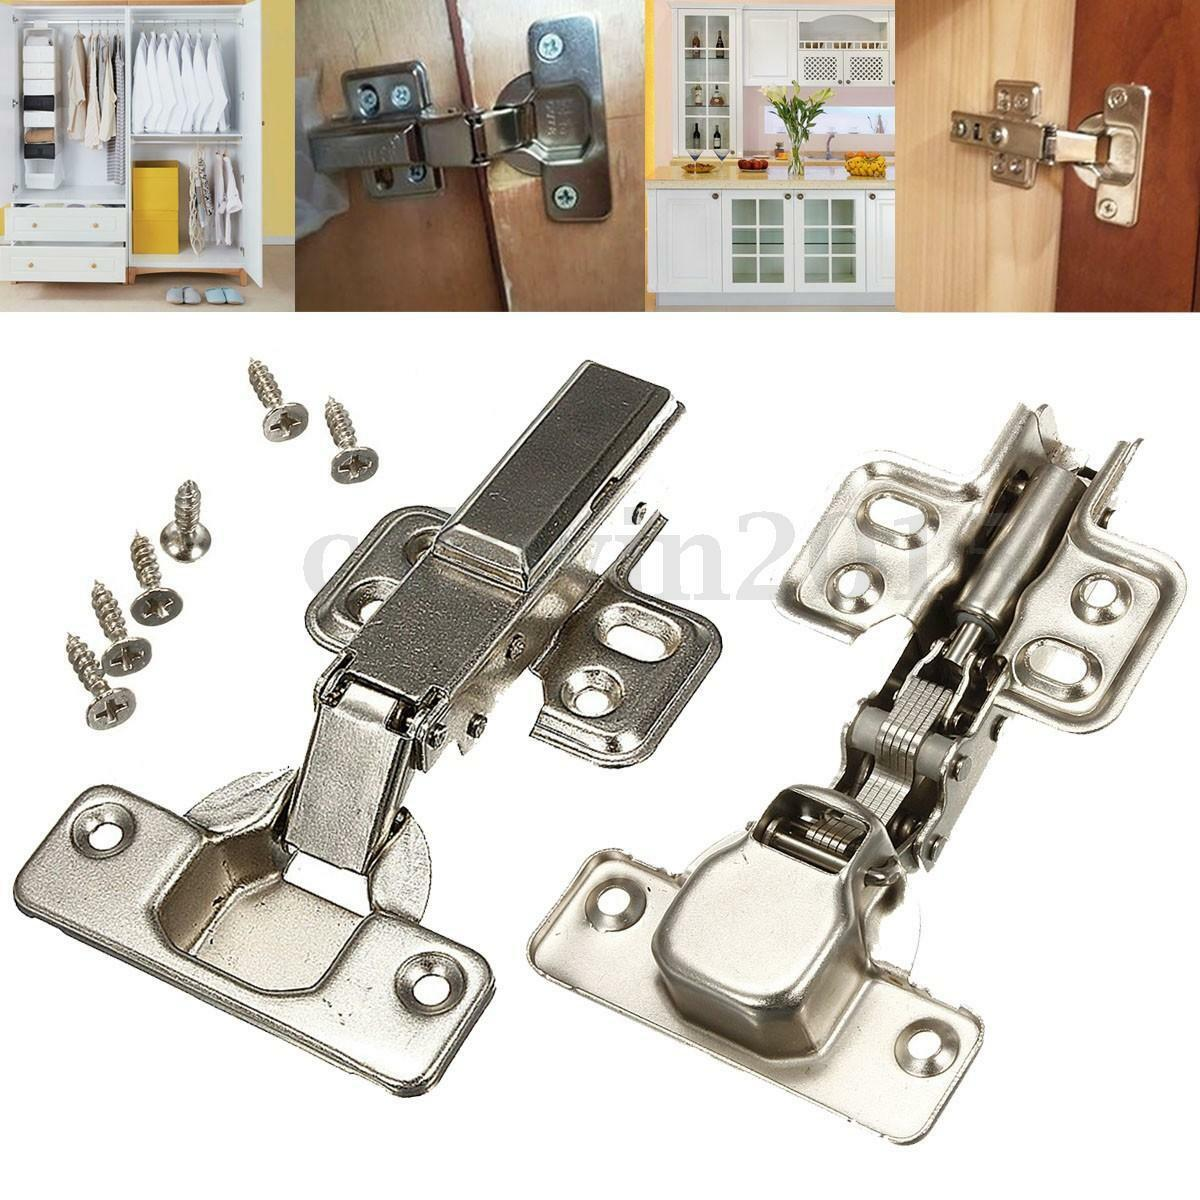 Hydraulic Hinges For Kitchen Cabinets Diys Soft Close Hydraulic Kitchen Cabinet Cupboard Door